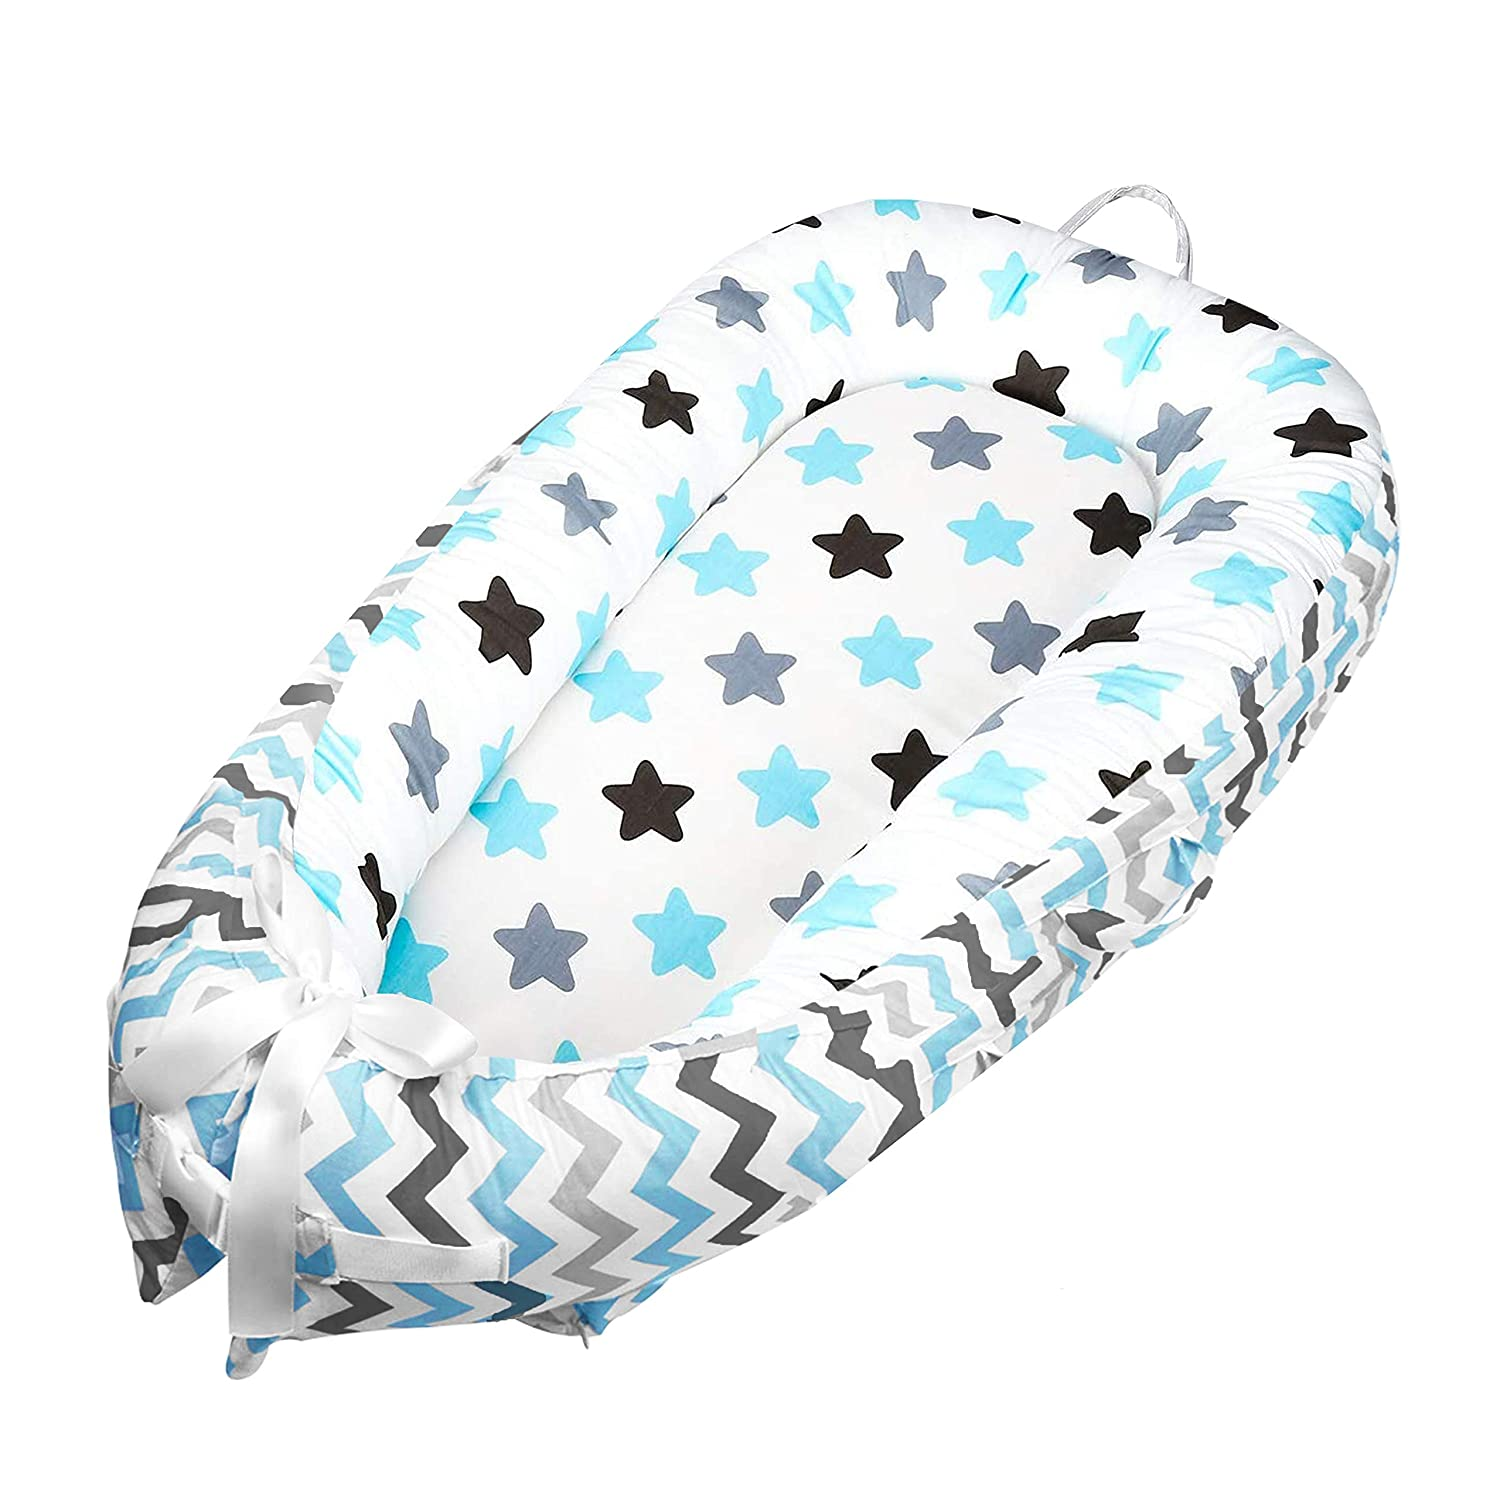 HULKY Newborn Baby Lounger Infant Sleeping Nest//Pods Breathable Cotton Portable Crib for Bedroom//Travel 0-24 Months Multifunctional Baby Nest